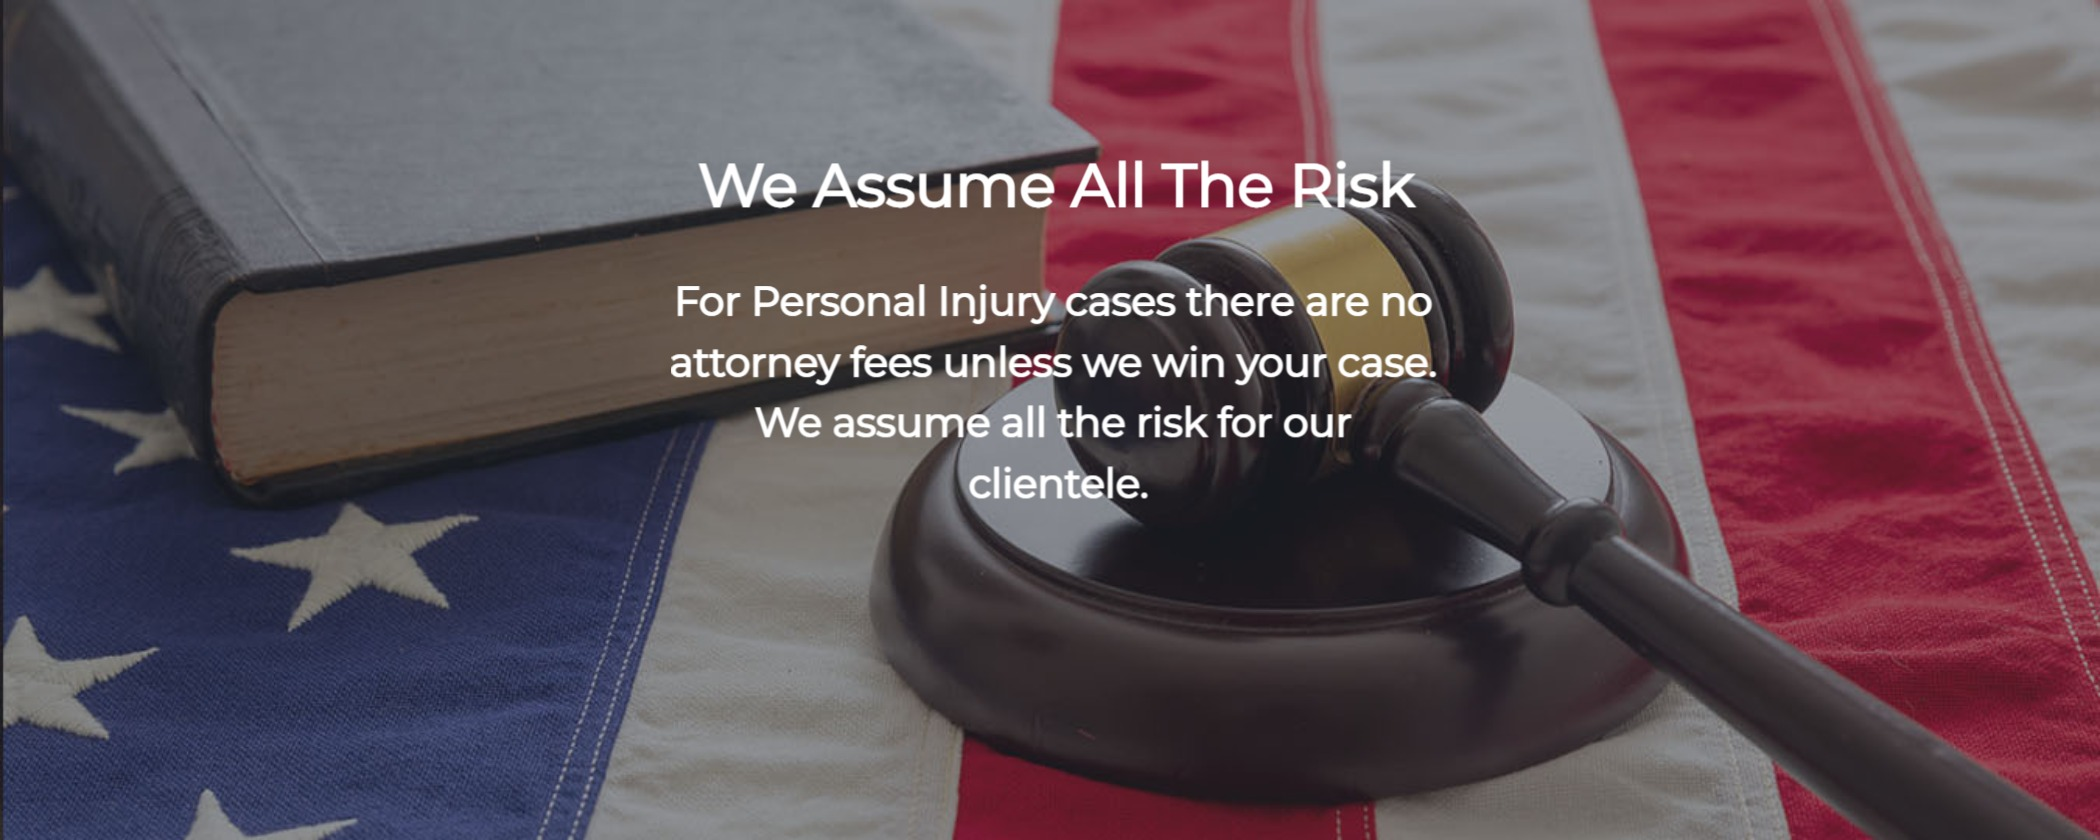 We Assume All The Risk